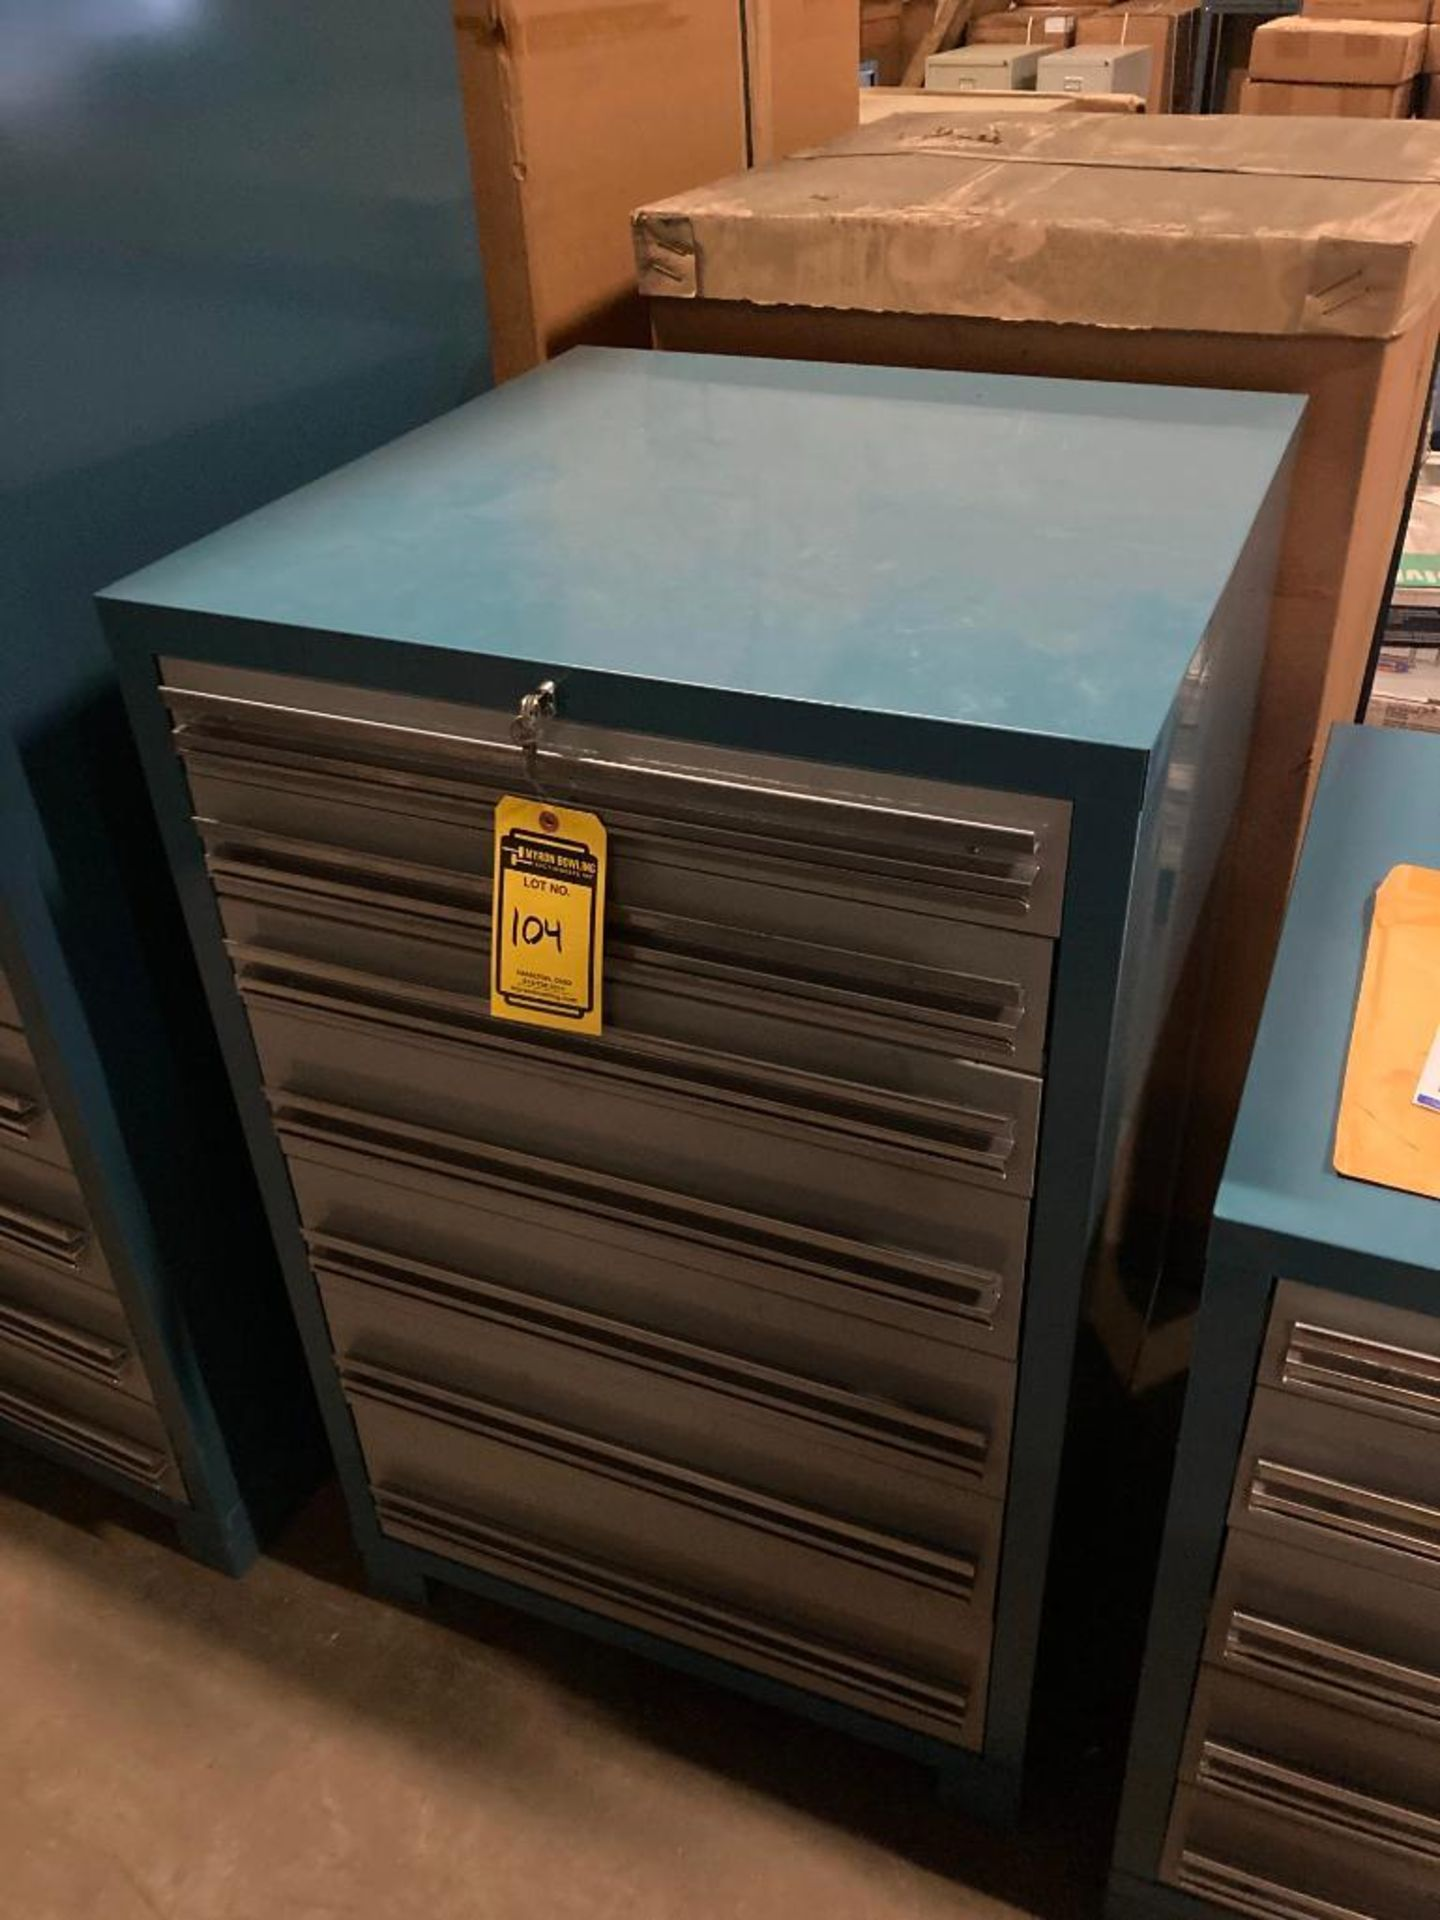 (2X) (NEW) EDSEL 7-DRAWER HEAVY DUTY MODULAR TOOLING CABINET; 28.25''W X 44.5''H X 28.25''D; MODEL M - Image 2 of 2